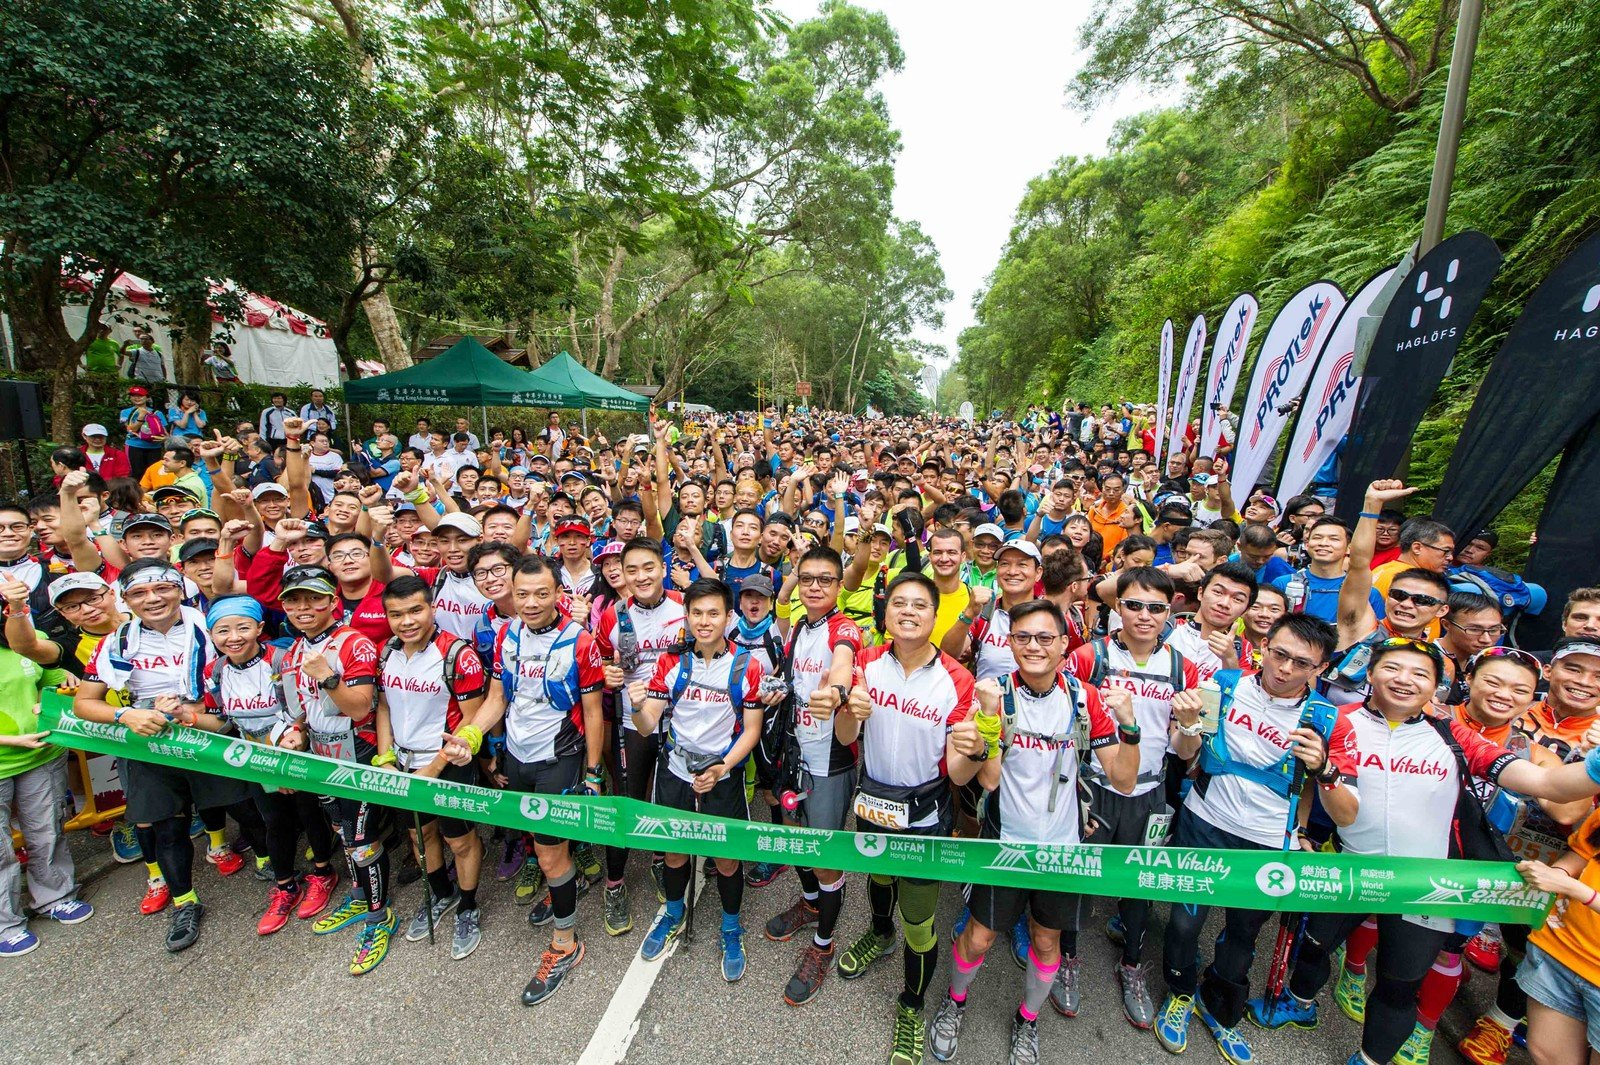 A total of 5,200 walkers are undertaking the 100 km challenge and will trek along the MacLehose Trail and other trails in teams of four within 48 hours.